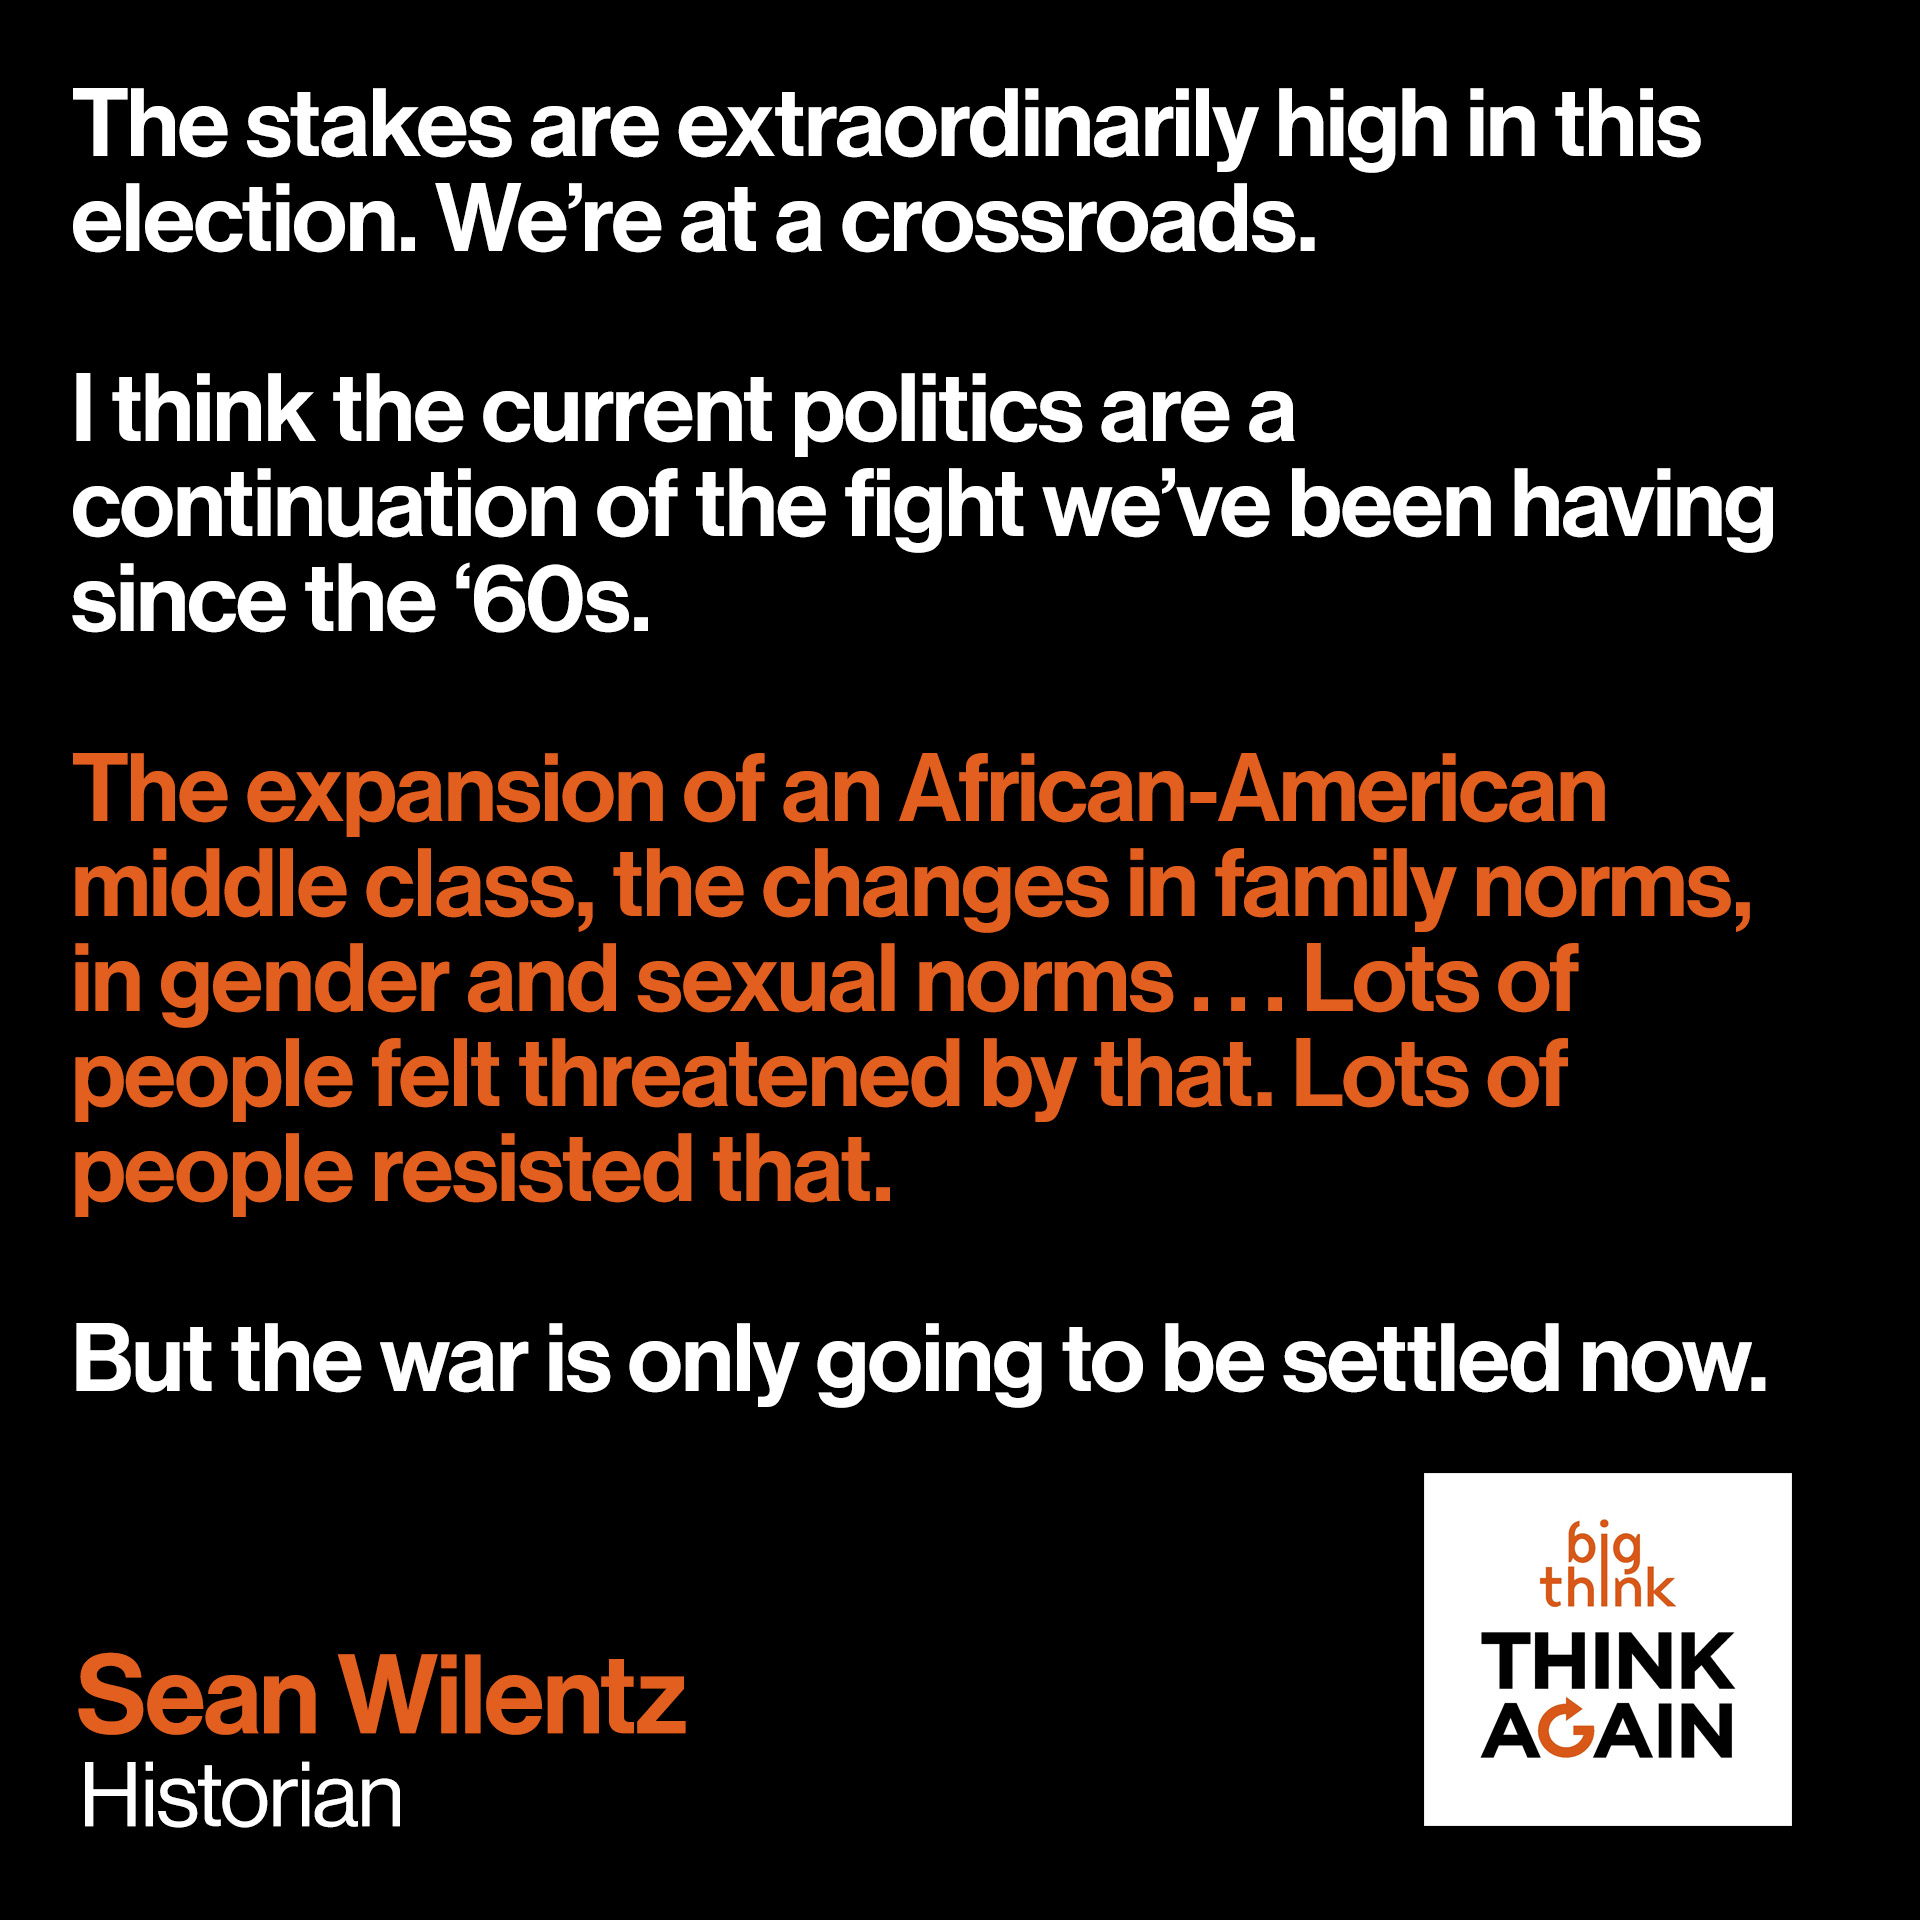 """The stakes are extraordinarily high in this election. We're at a crossroads.  I think the current politics are a continuation of the fight we've been having since the '60s. The expansion of an African-American middle class, the changes in family norms, in gender and sexual norms . . . Lots of people felt threatened by that. Lots of people resisted that.  But the war is only going to be settled now.""  - Sean Wilentz"